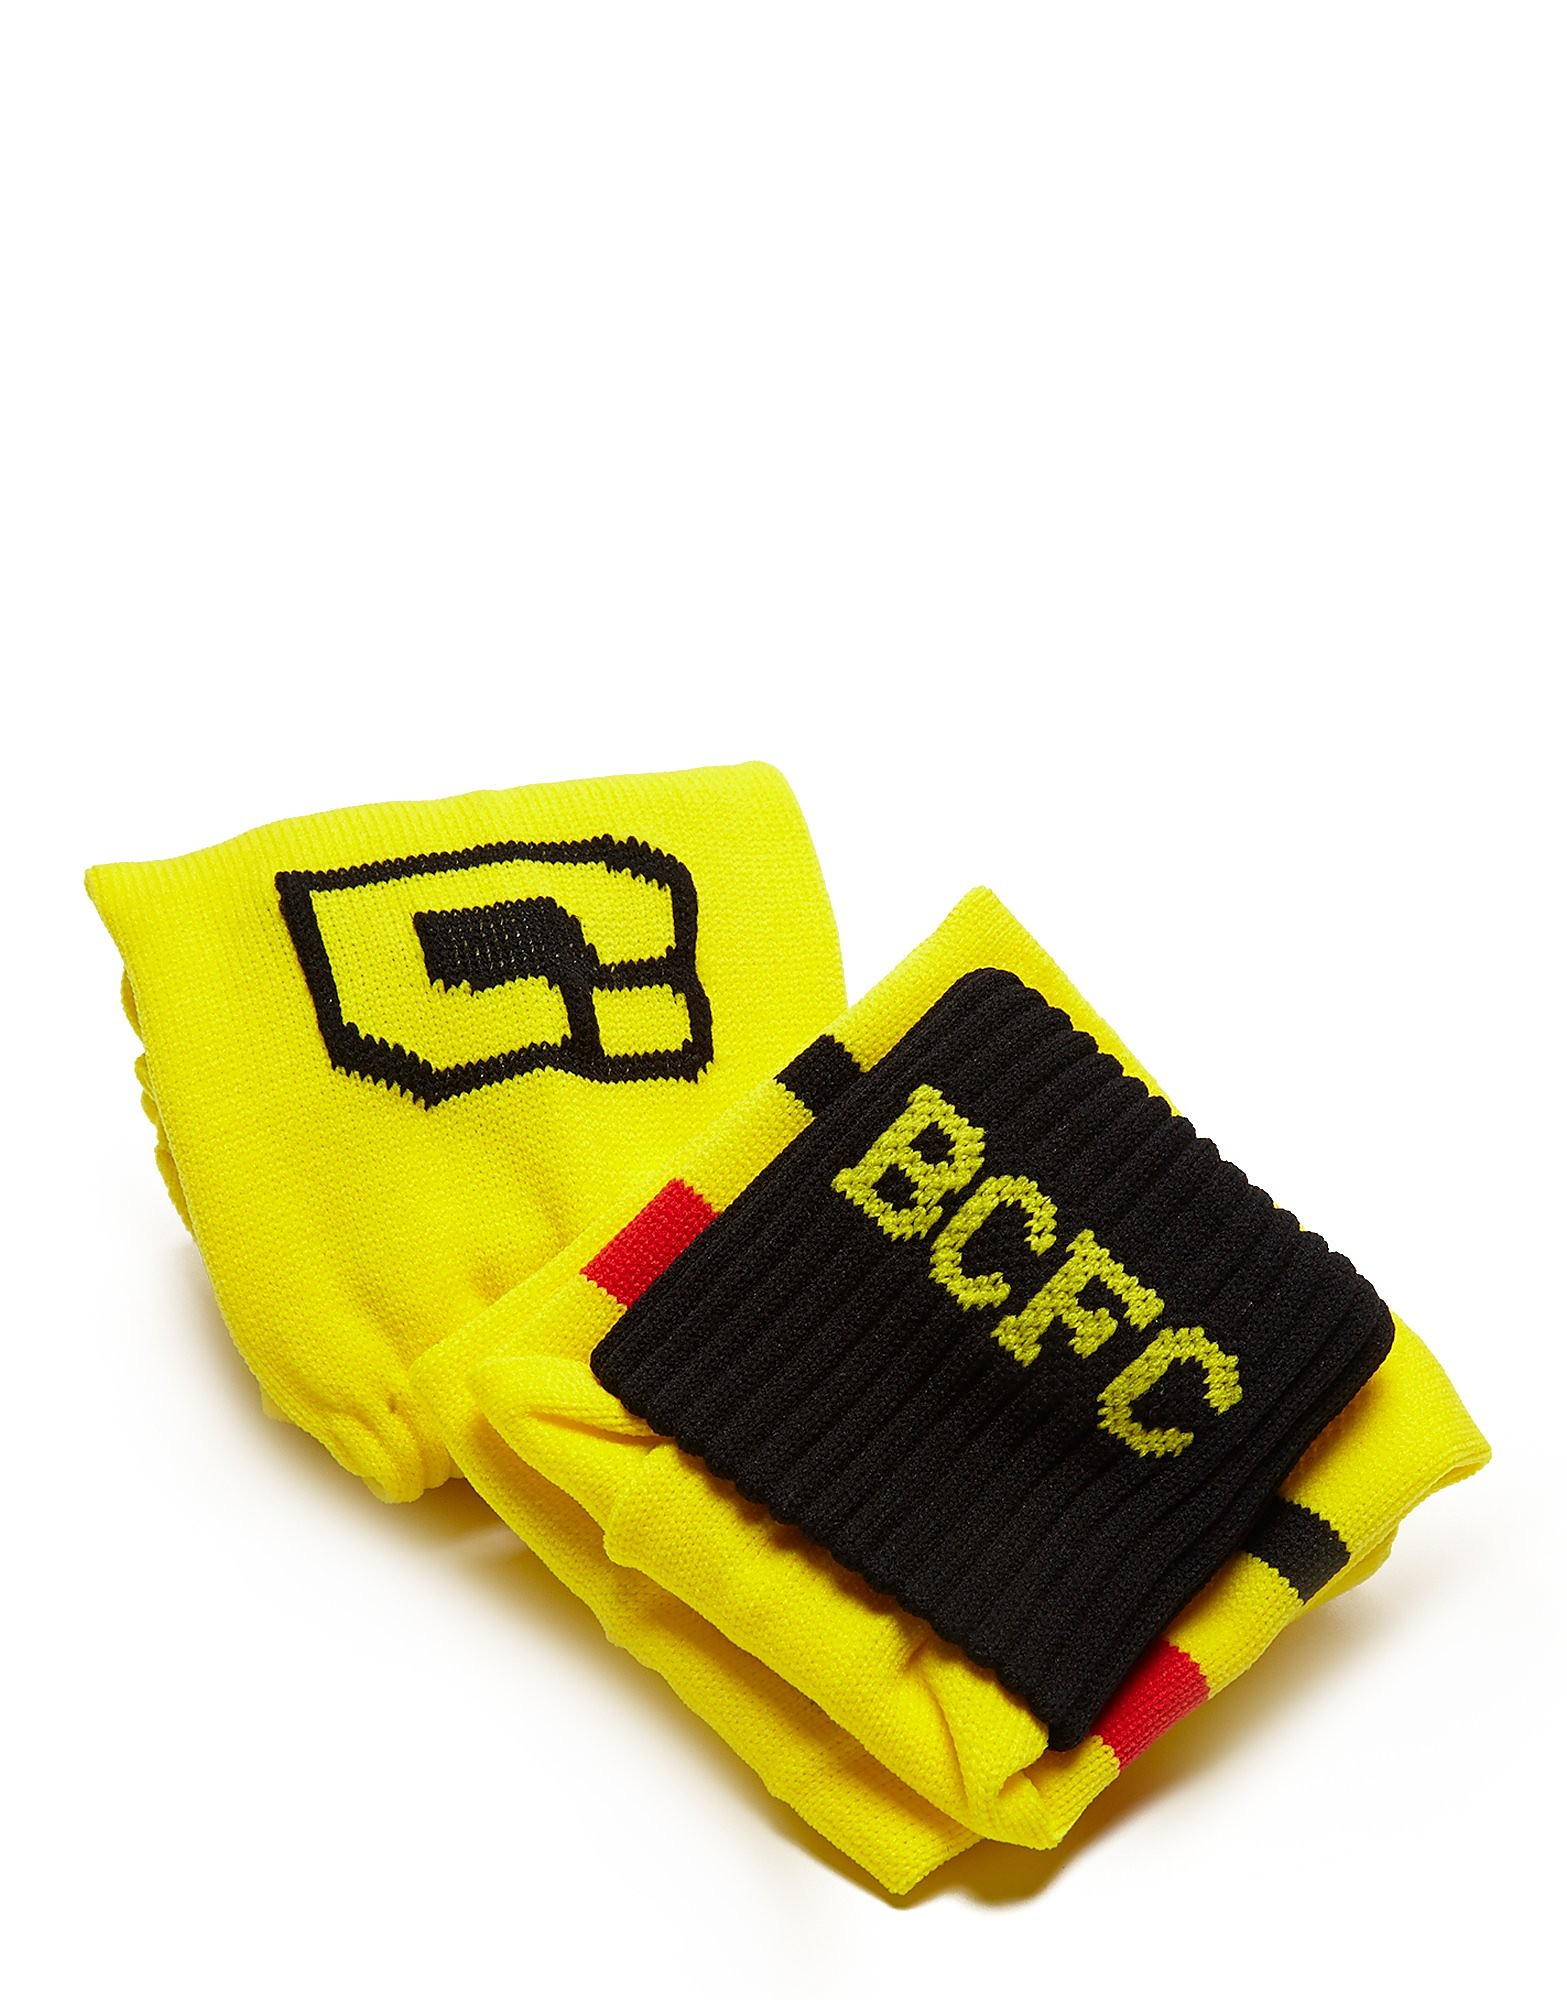 Carbrini Birmingham City FC Away 2015/16 Socks